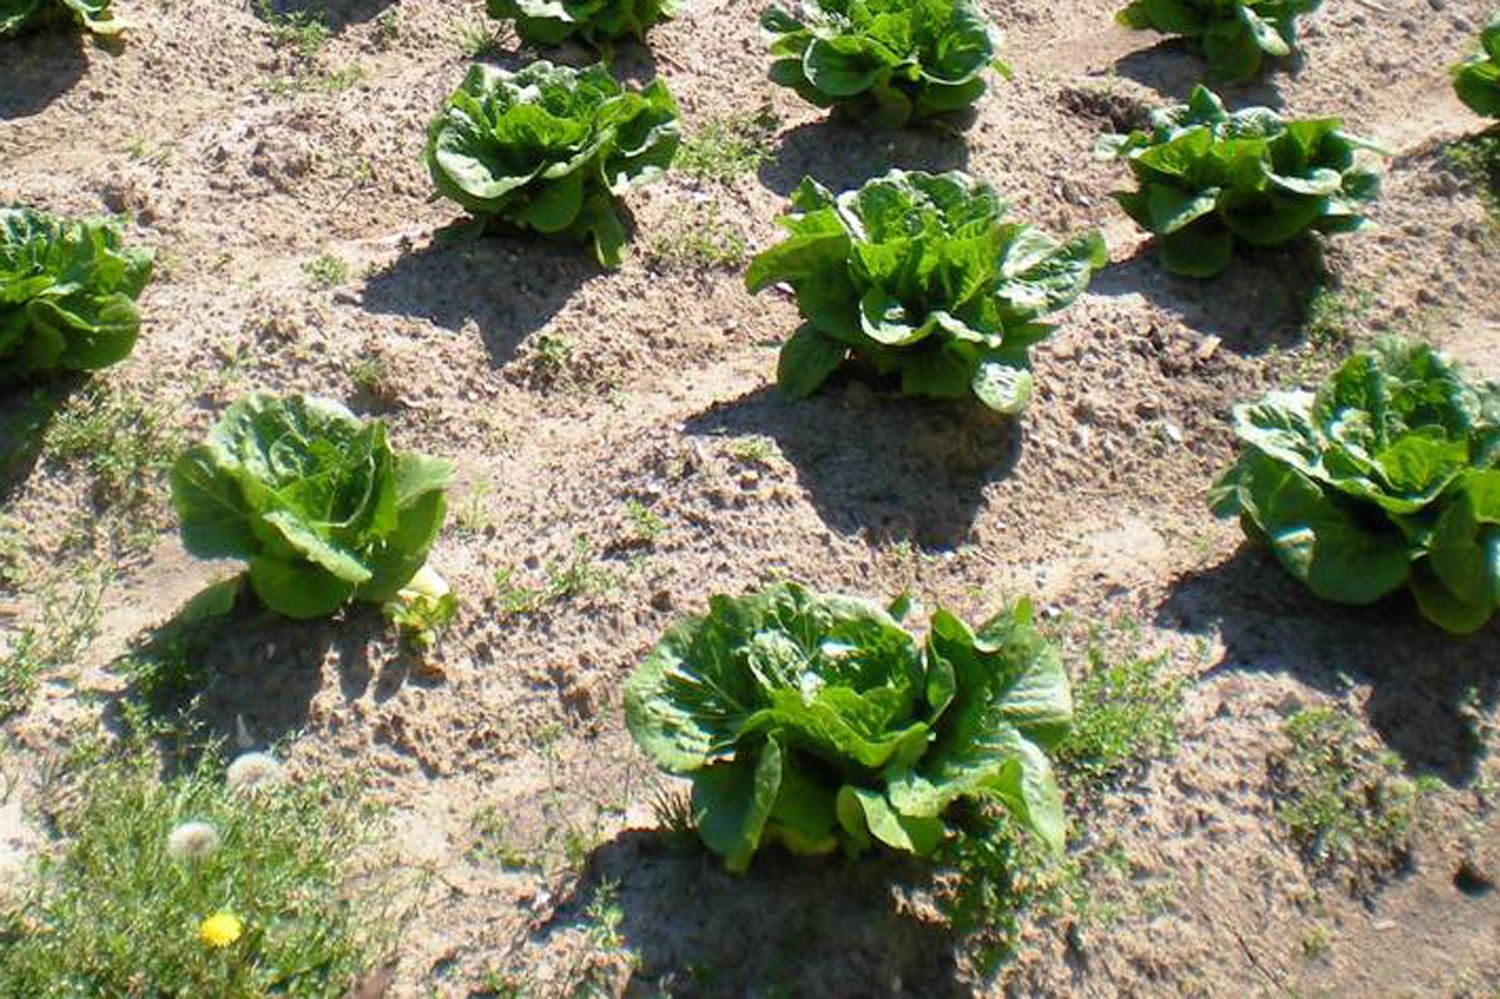 The fungicide treats a wide variety of vegetable transplants.